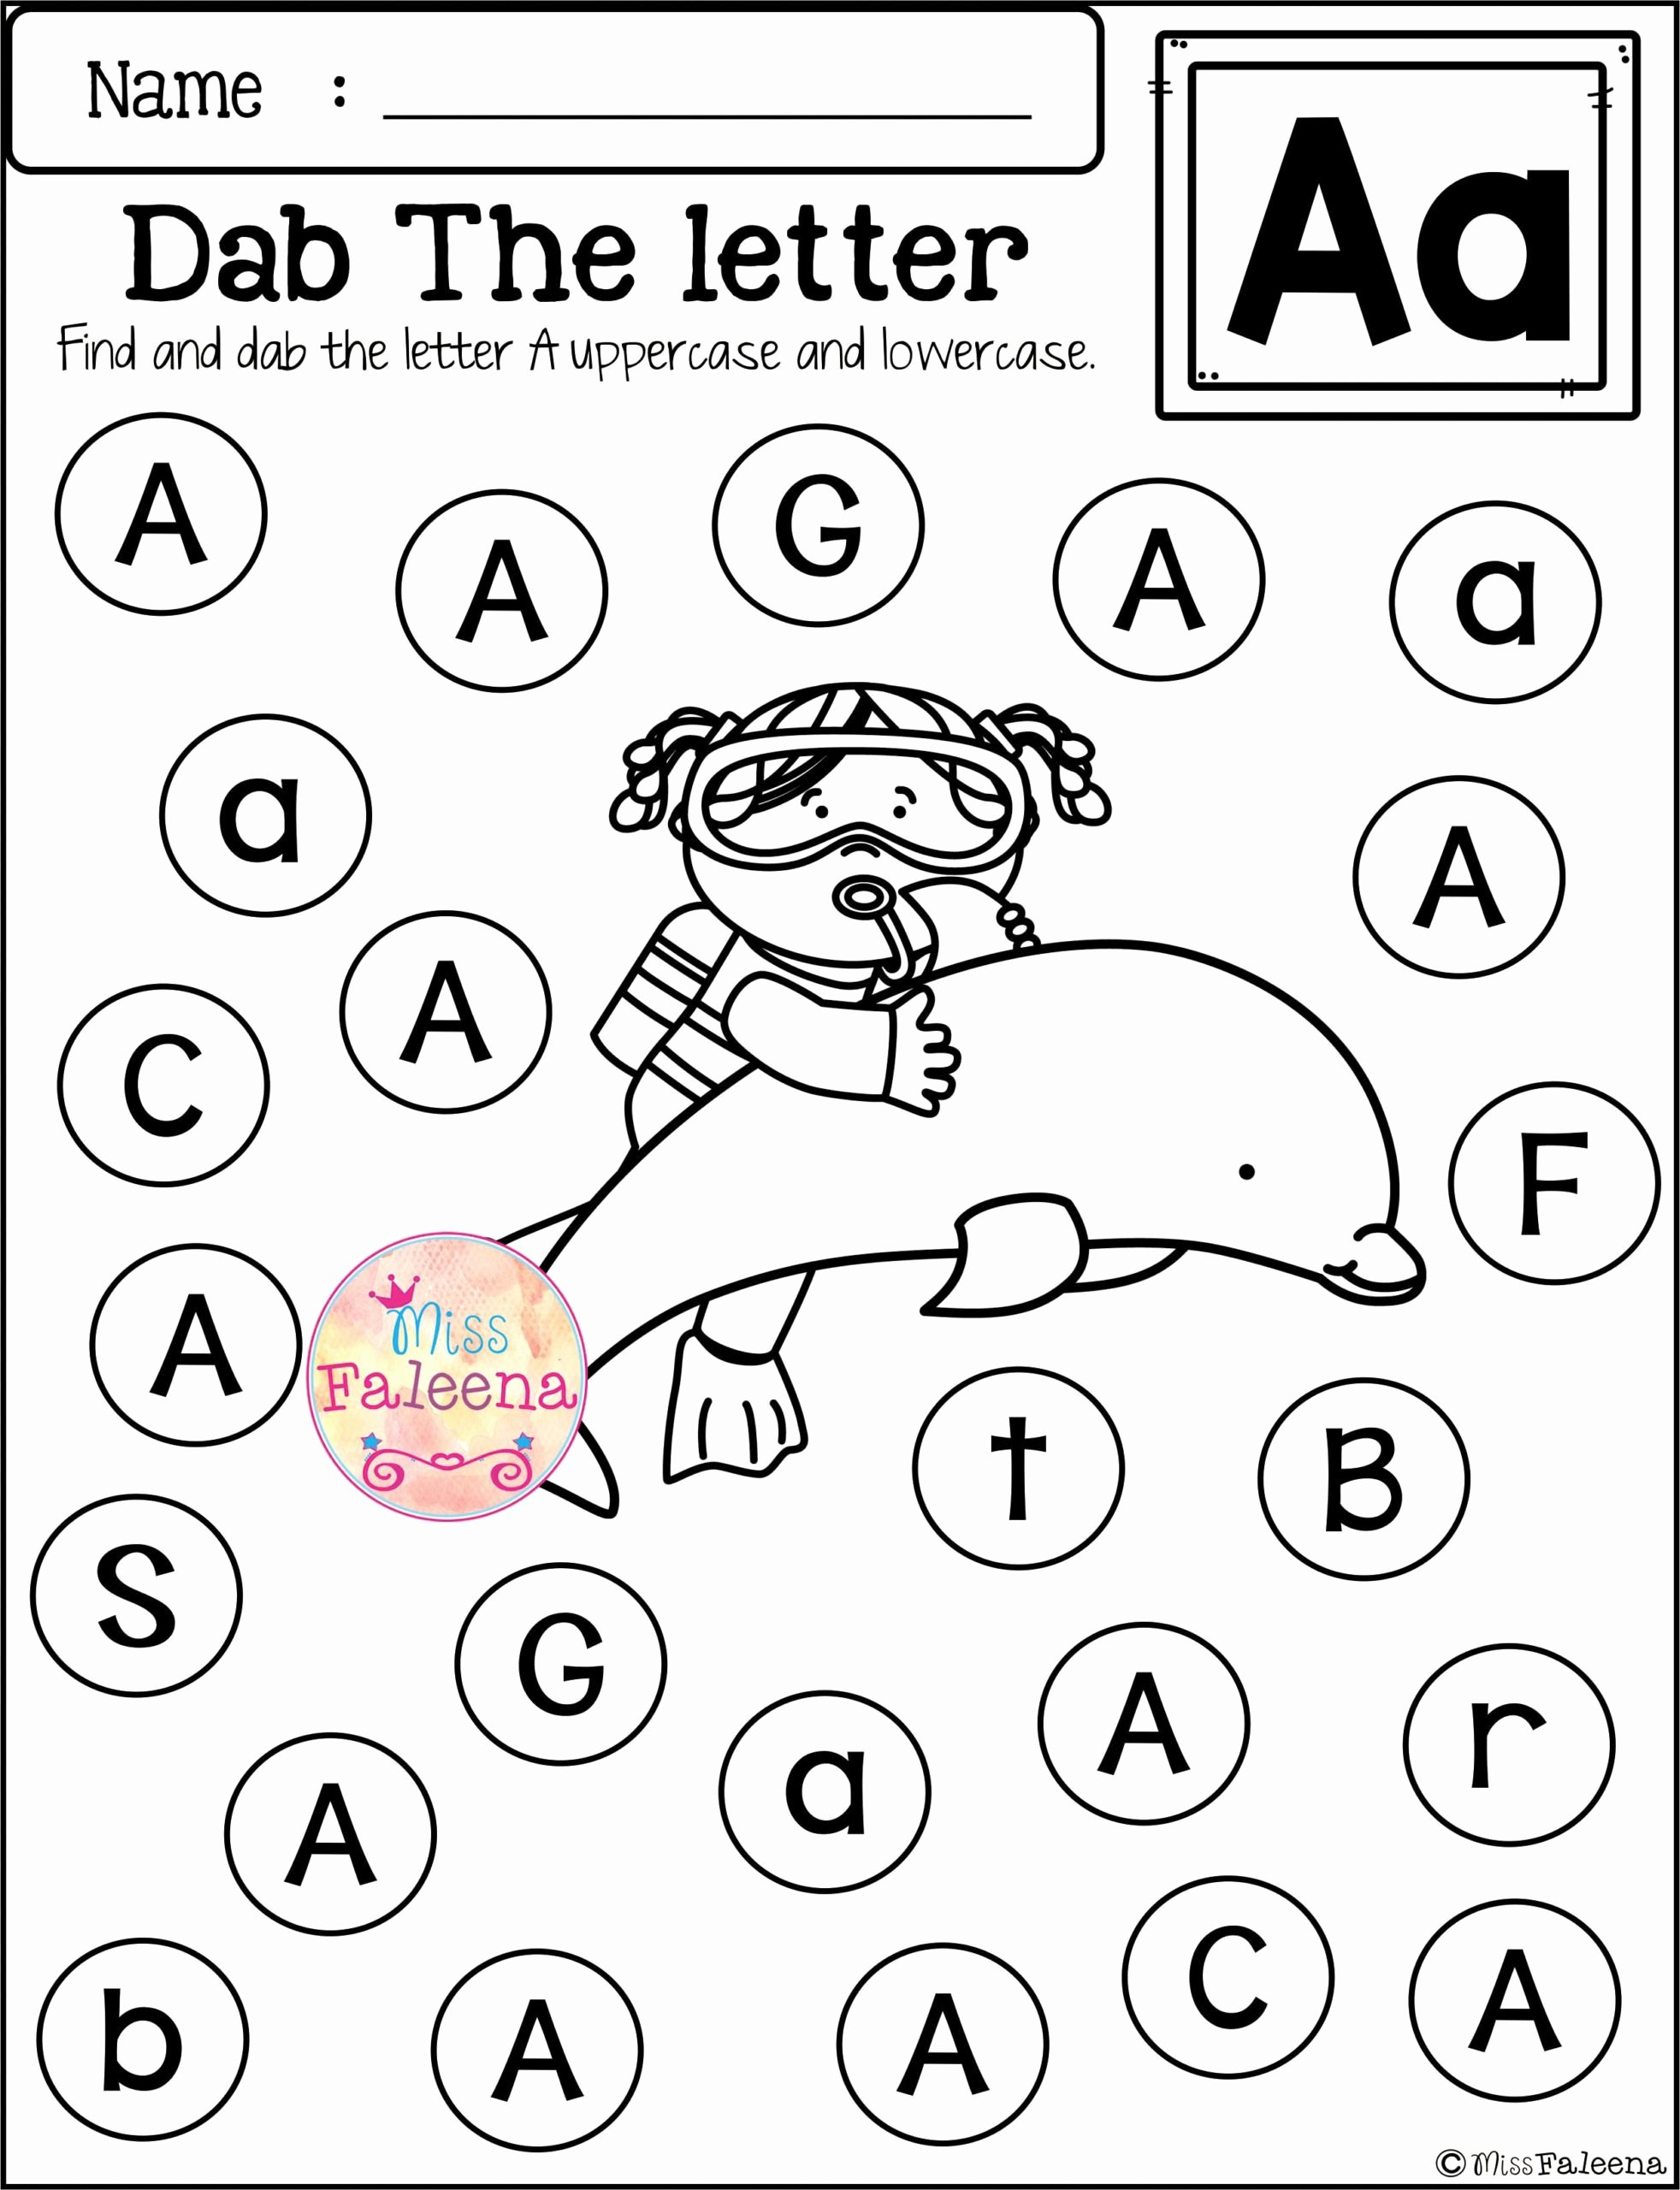 Worksheets for Preschoolers Letters Awesome Worksheets Free Alphabet Kindergarten Worksheets Preschool